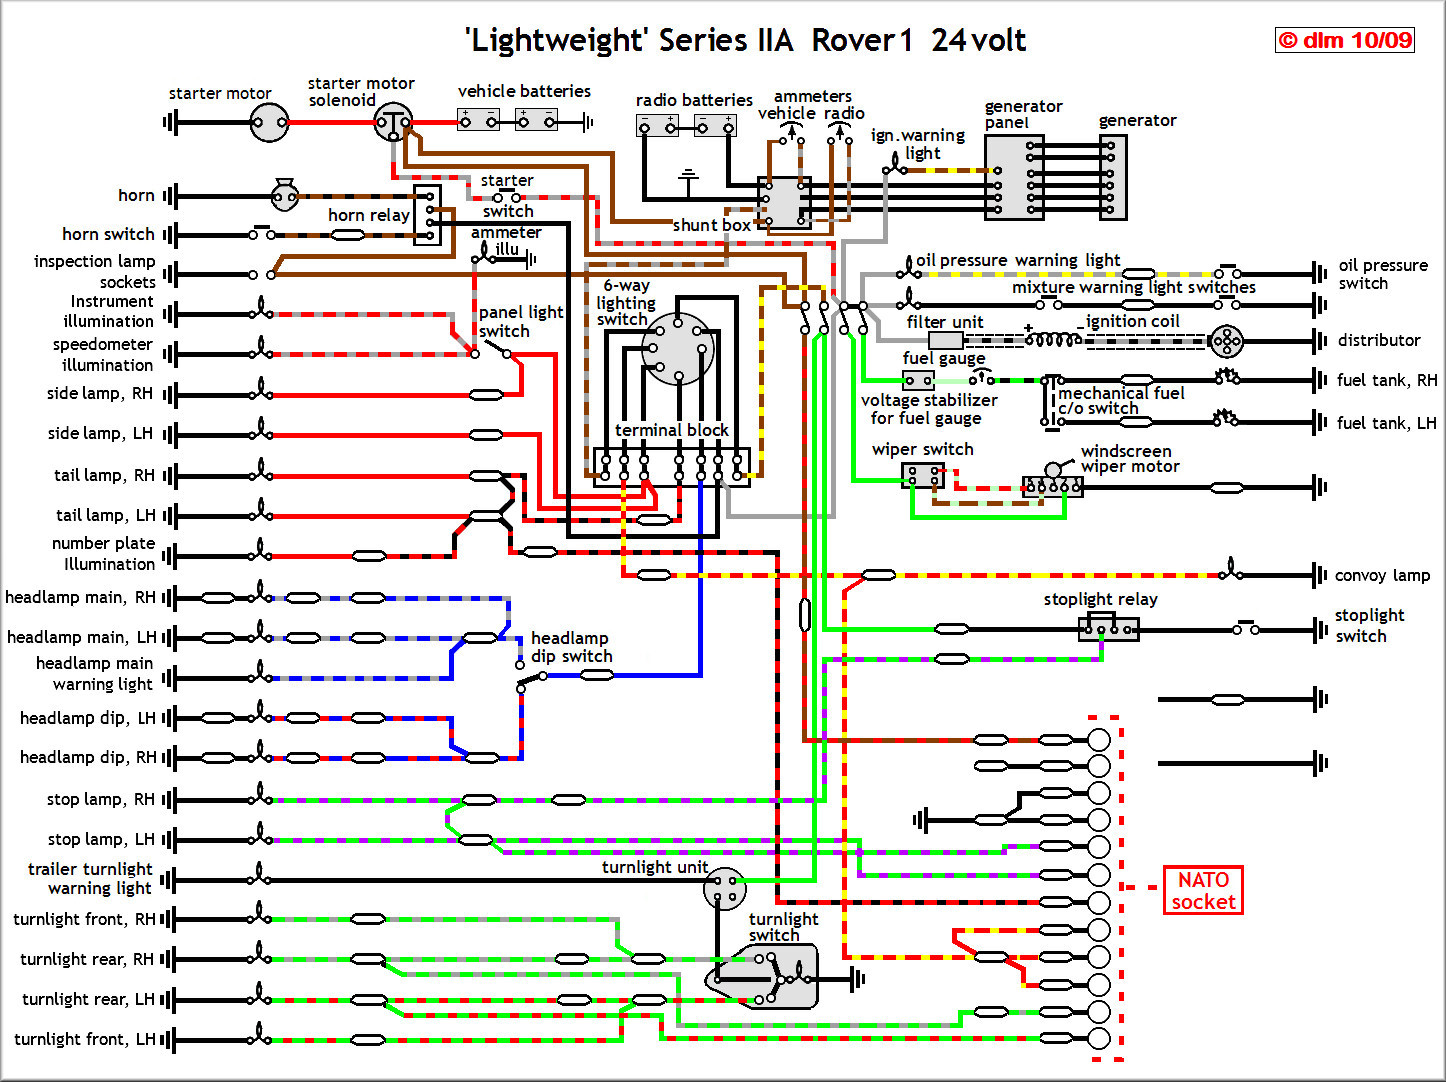 rover1 24Av land rover lightweight Series Speaker Wiring Diagram at edmiracle.co